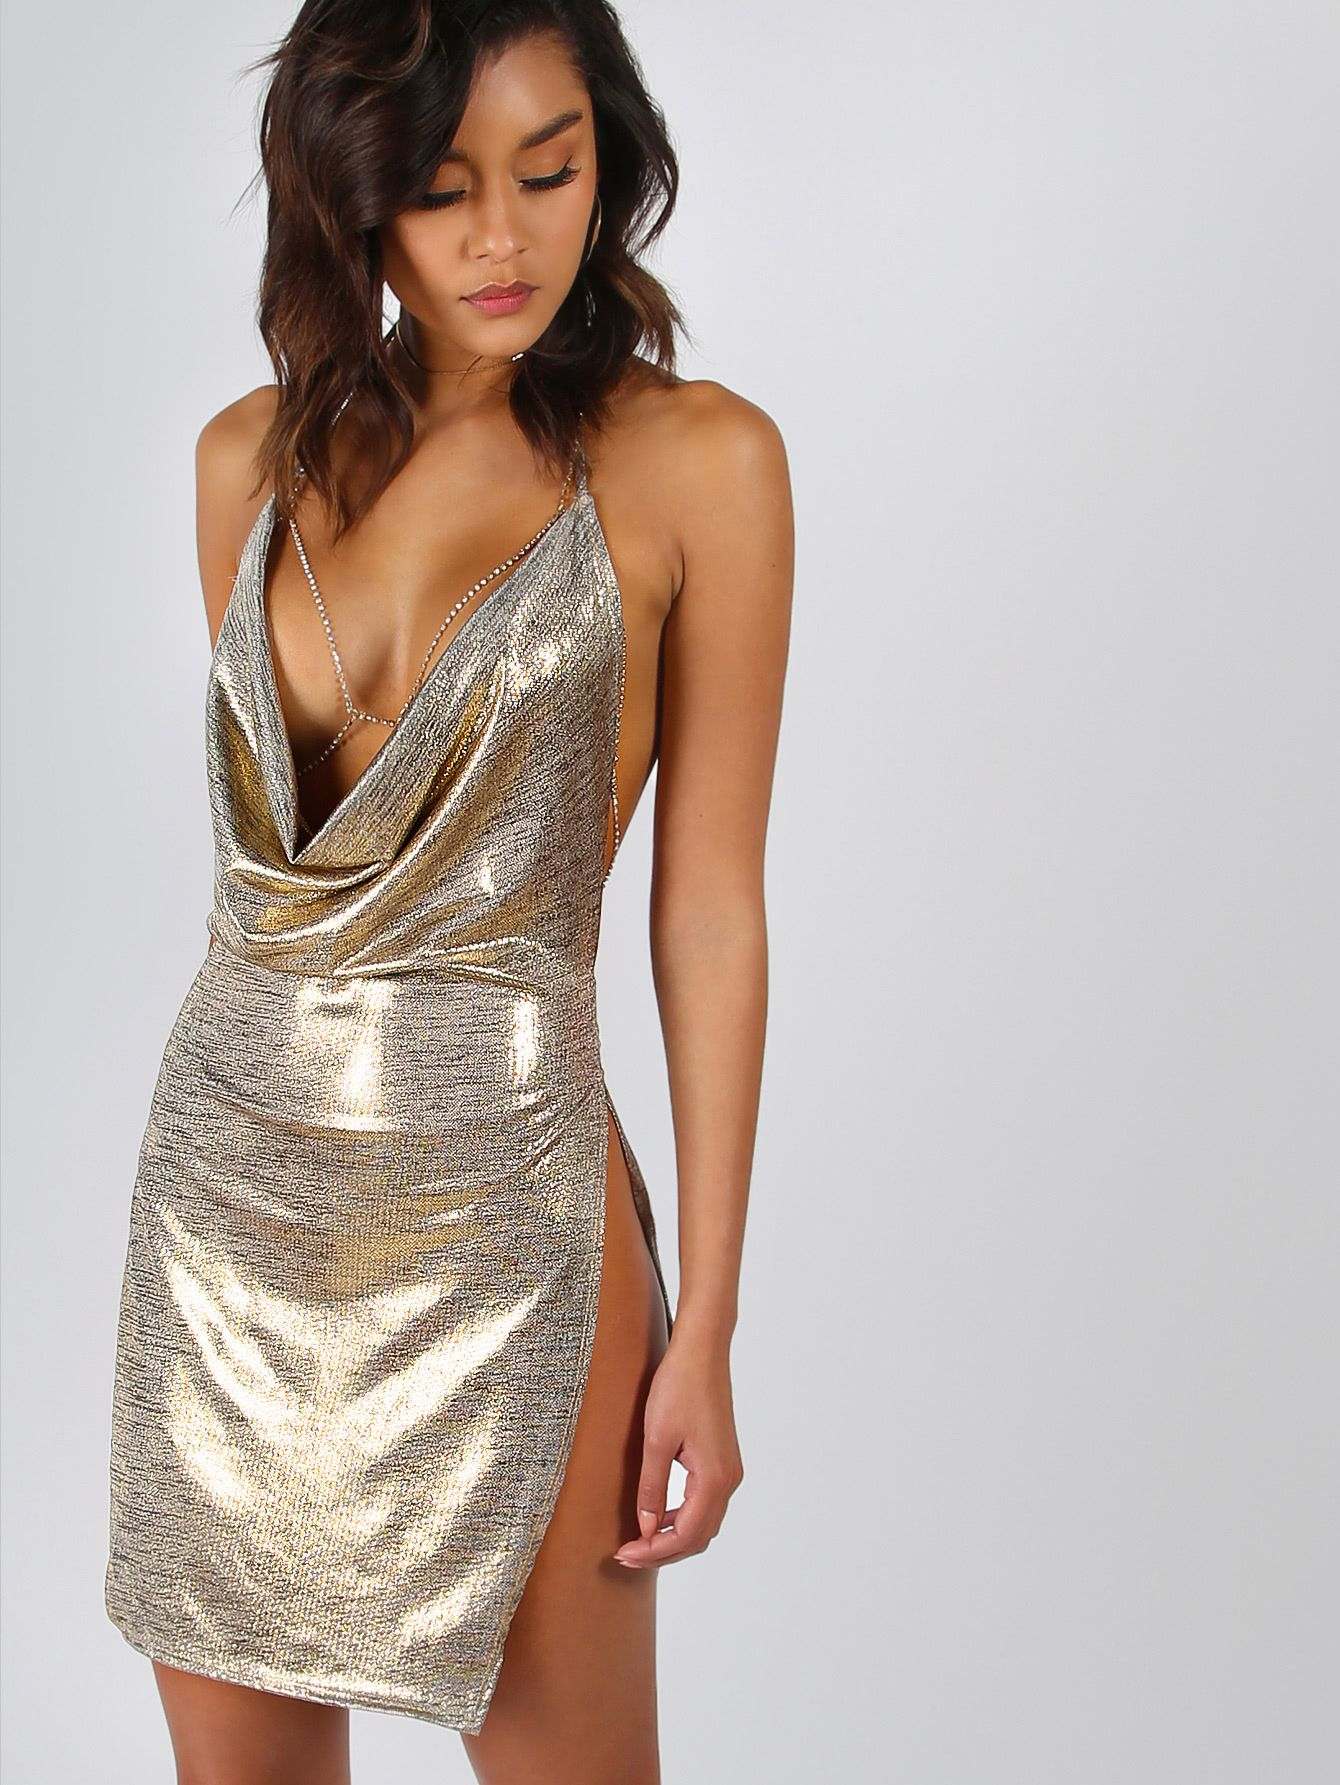 ca6e1daf757b Shop Backless Metallic Plunge Cowl Slit Dress online. SheIn offers Backless  Metallic Plunge Cowl Slit Dress & more to fit your fashionable needs.